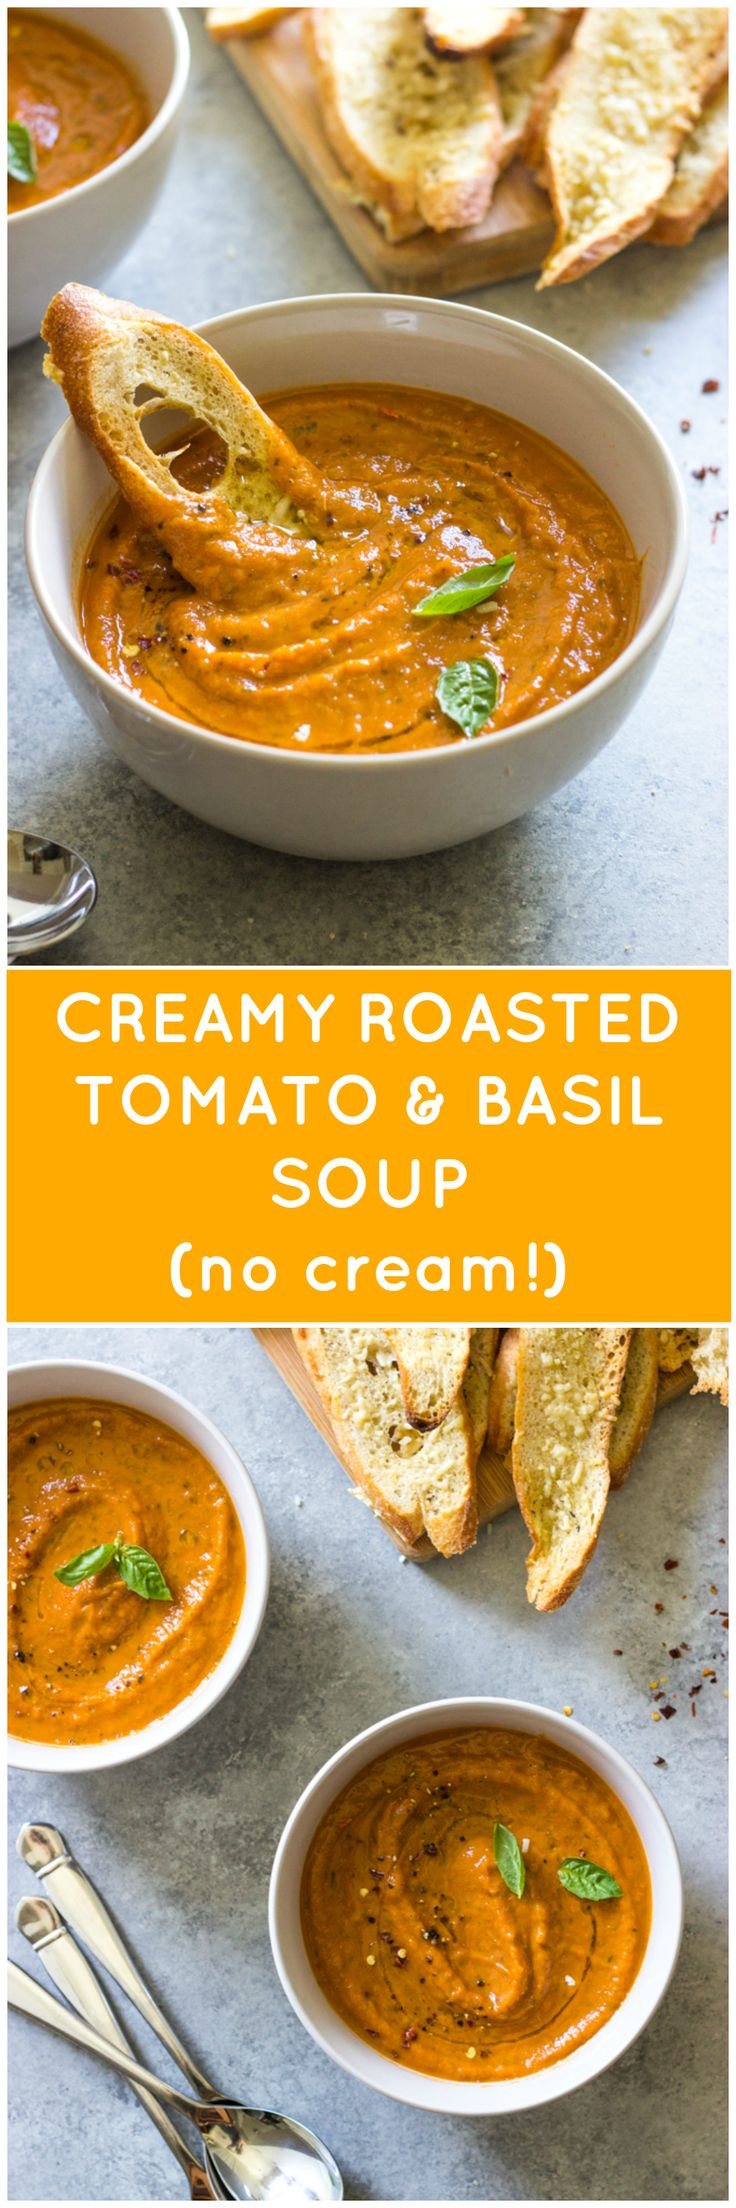 Creamy Roasted Tomato and Basil Soup - creamy tomato soup without any cream or cream alikes! So rich, buttery, yet light | littlebroken.com @littlebroken